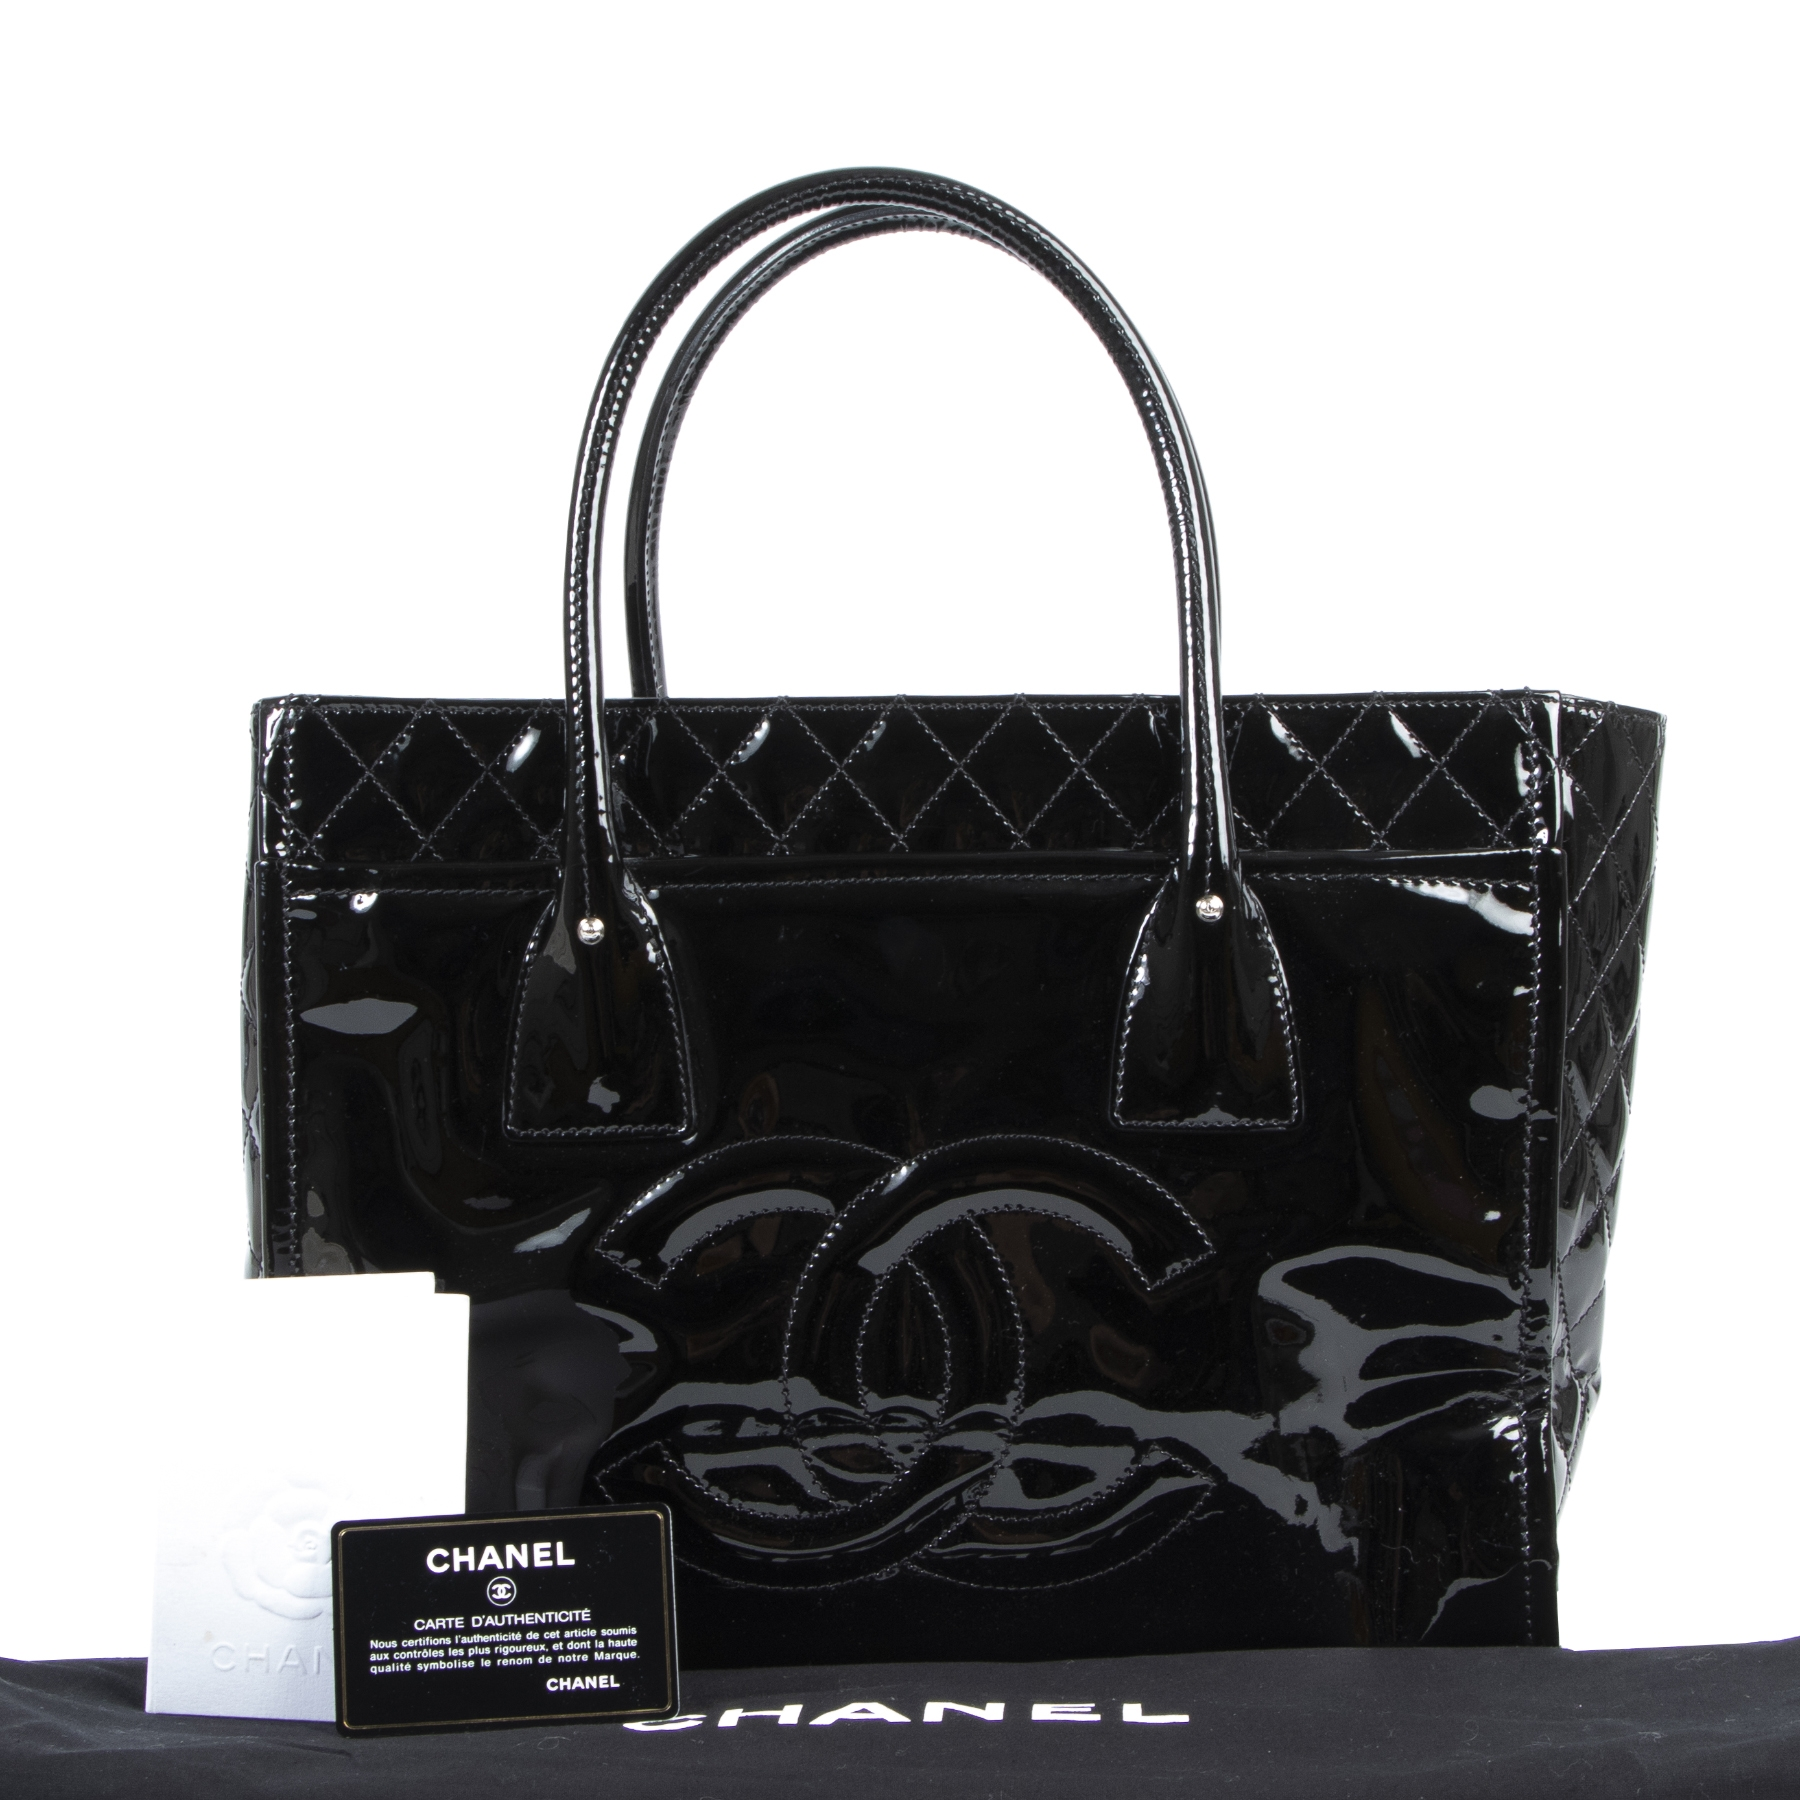 Chanel Patent Top Handle Shopping Tote acheter en ligne seconde main Chanel Patent Top Handle Shopping Tote